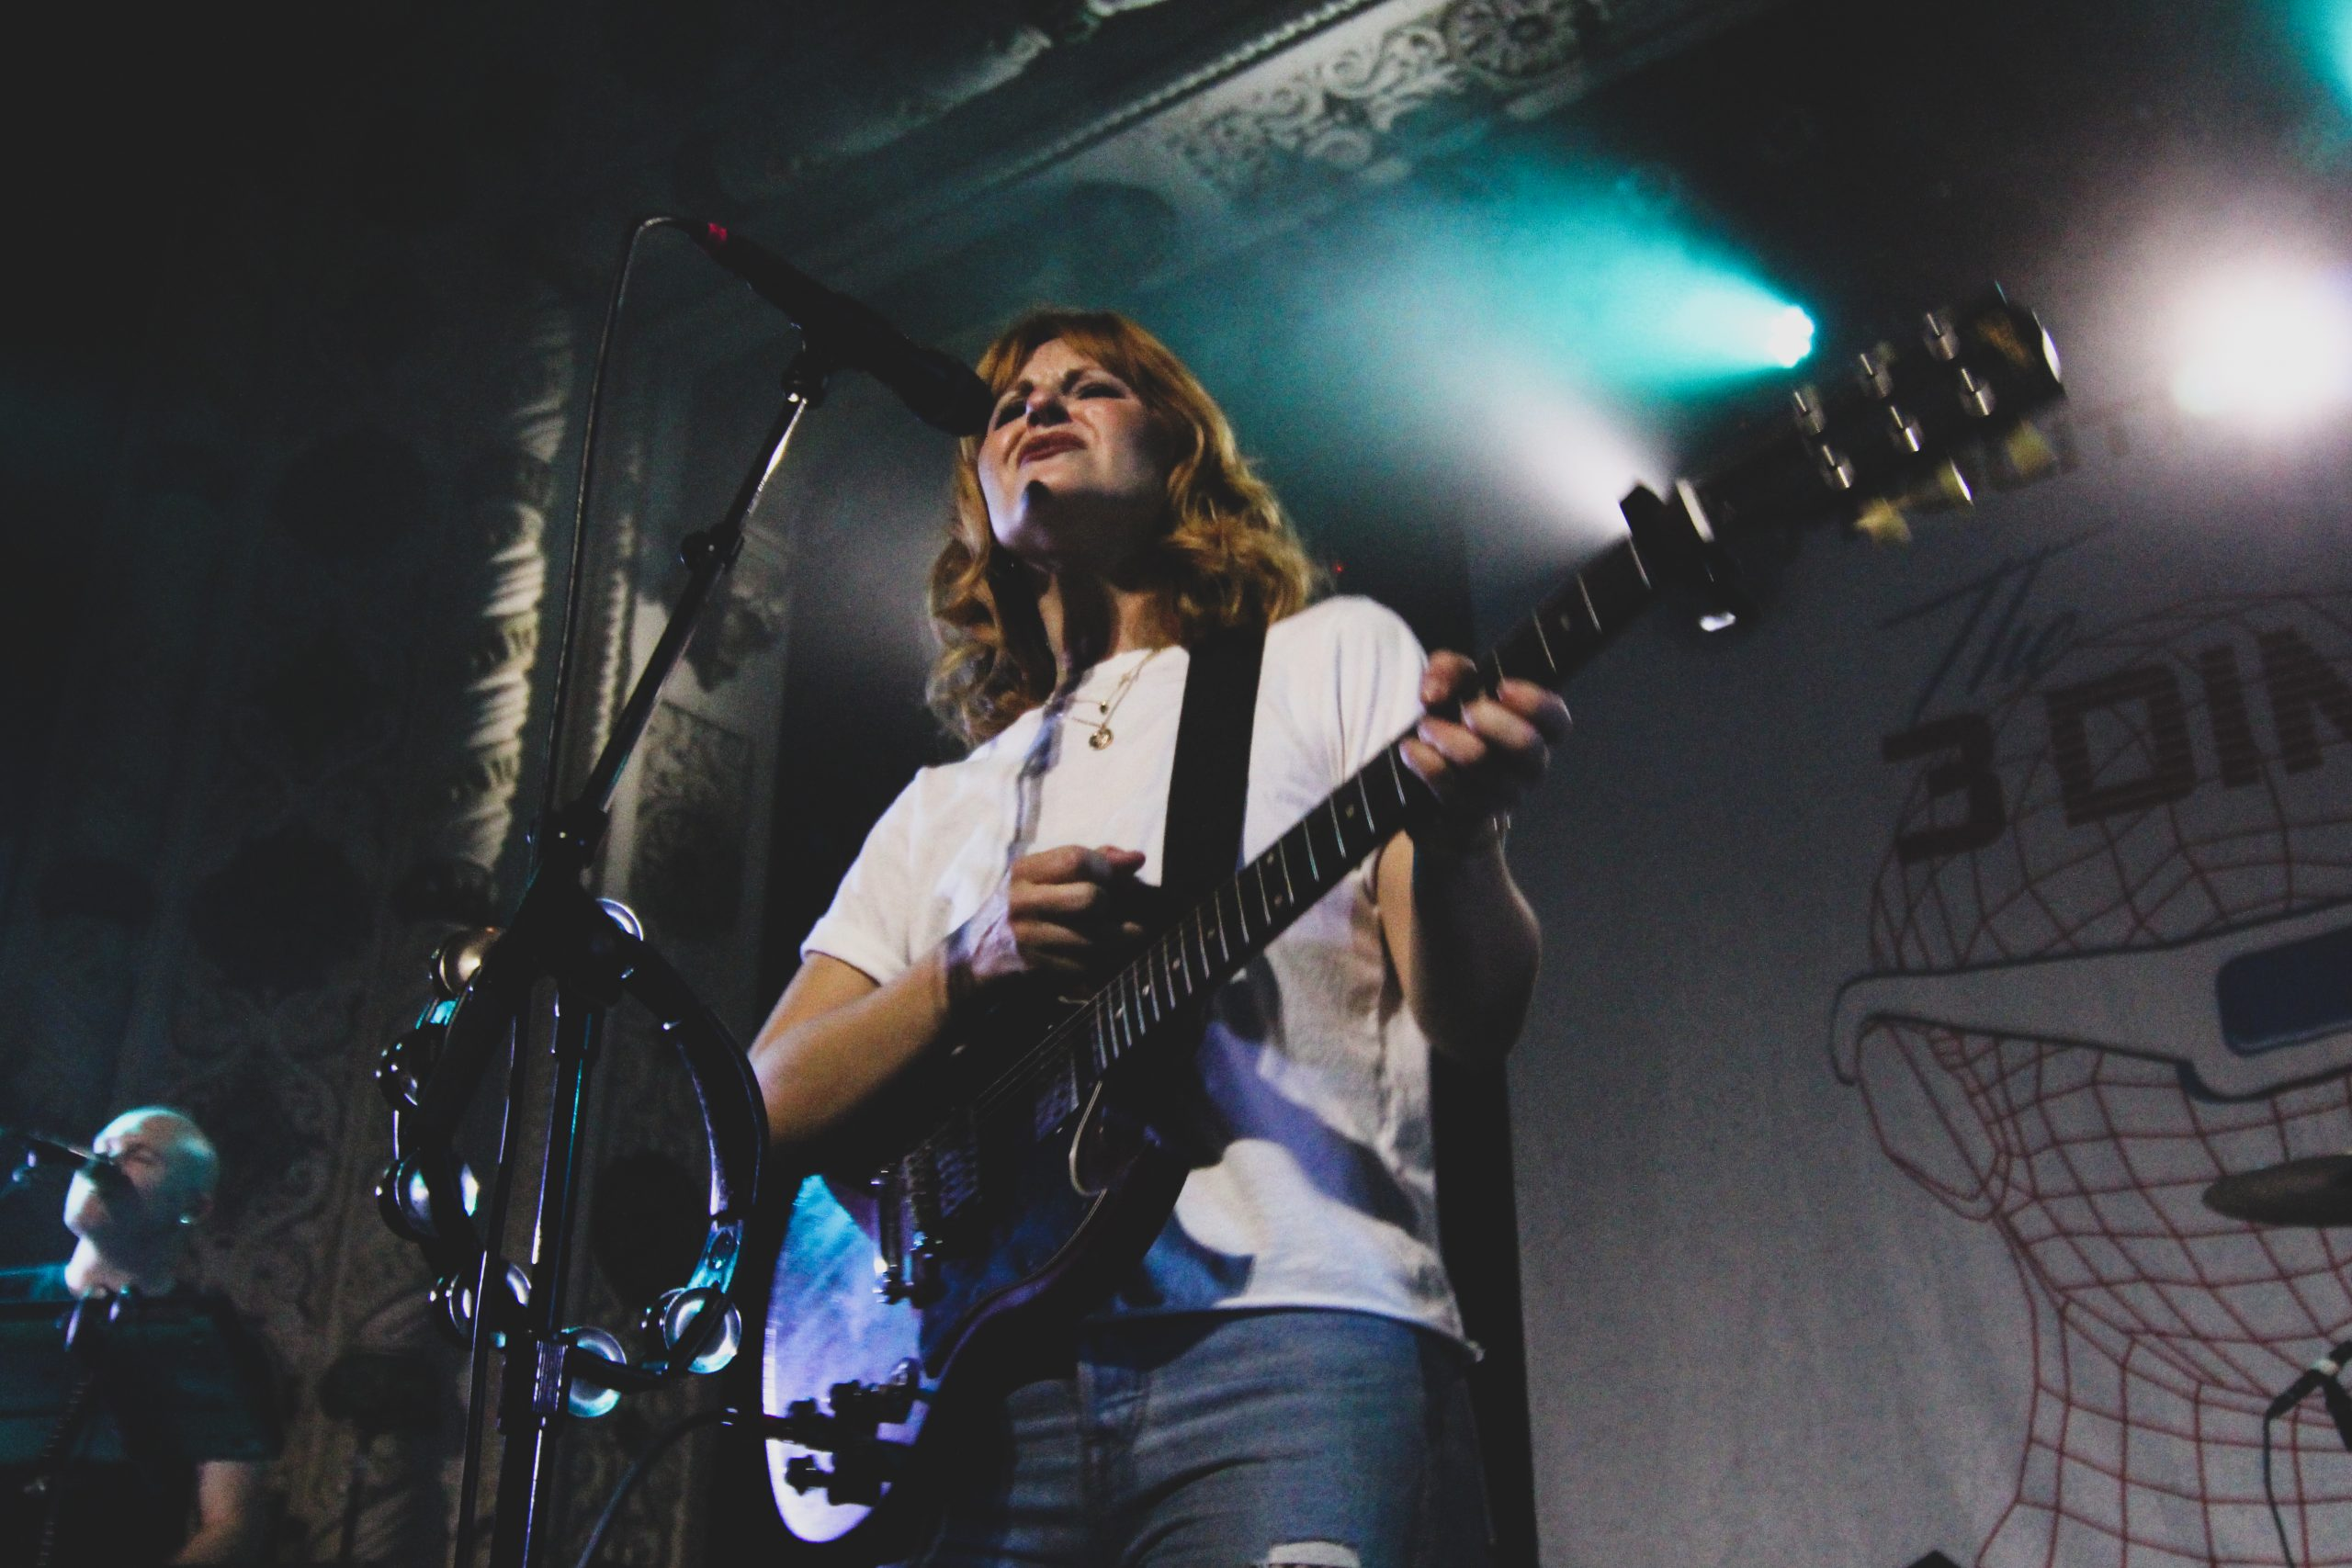 Katie Earl of The Mowglis at The Metro in Chicago, IL on 11/12/2019 Photo; Abby Hamann